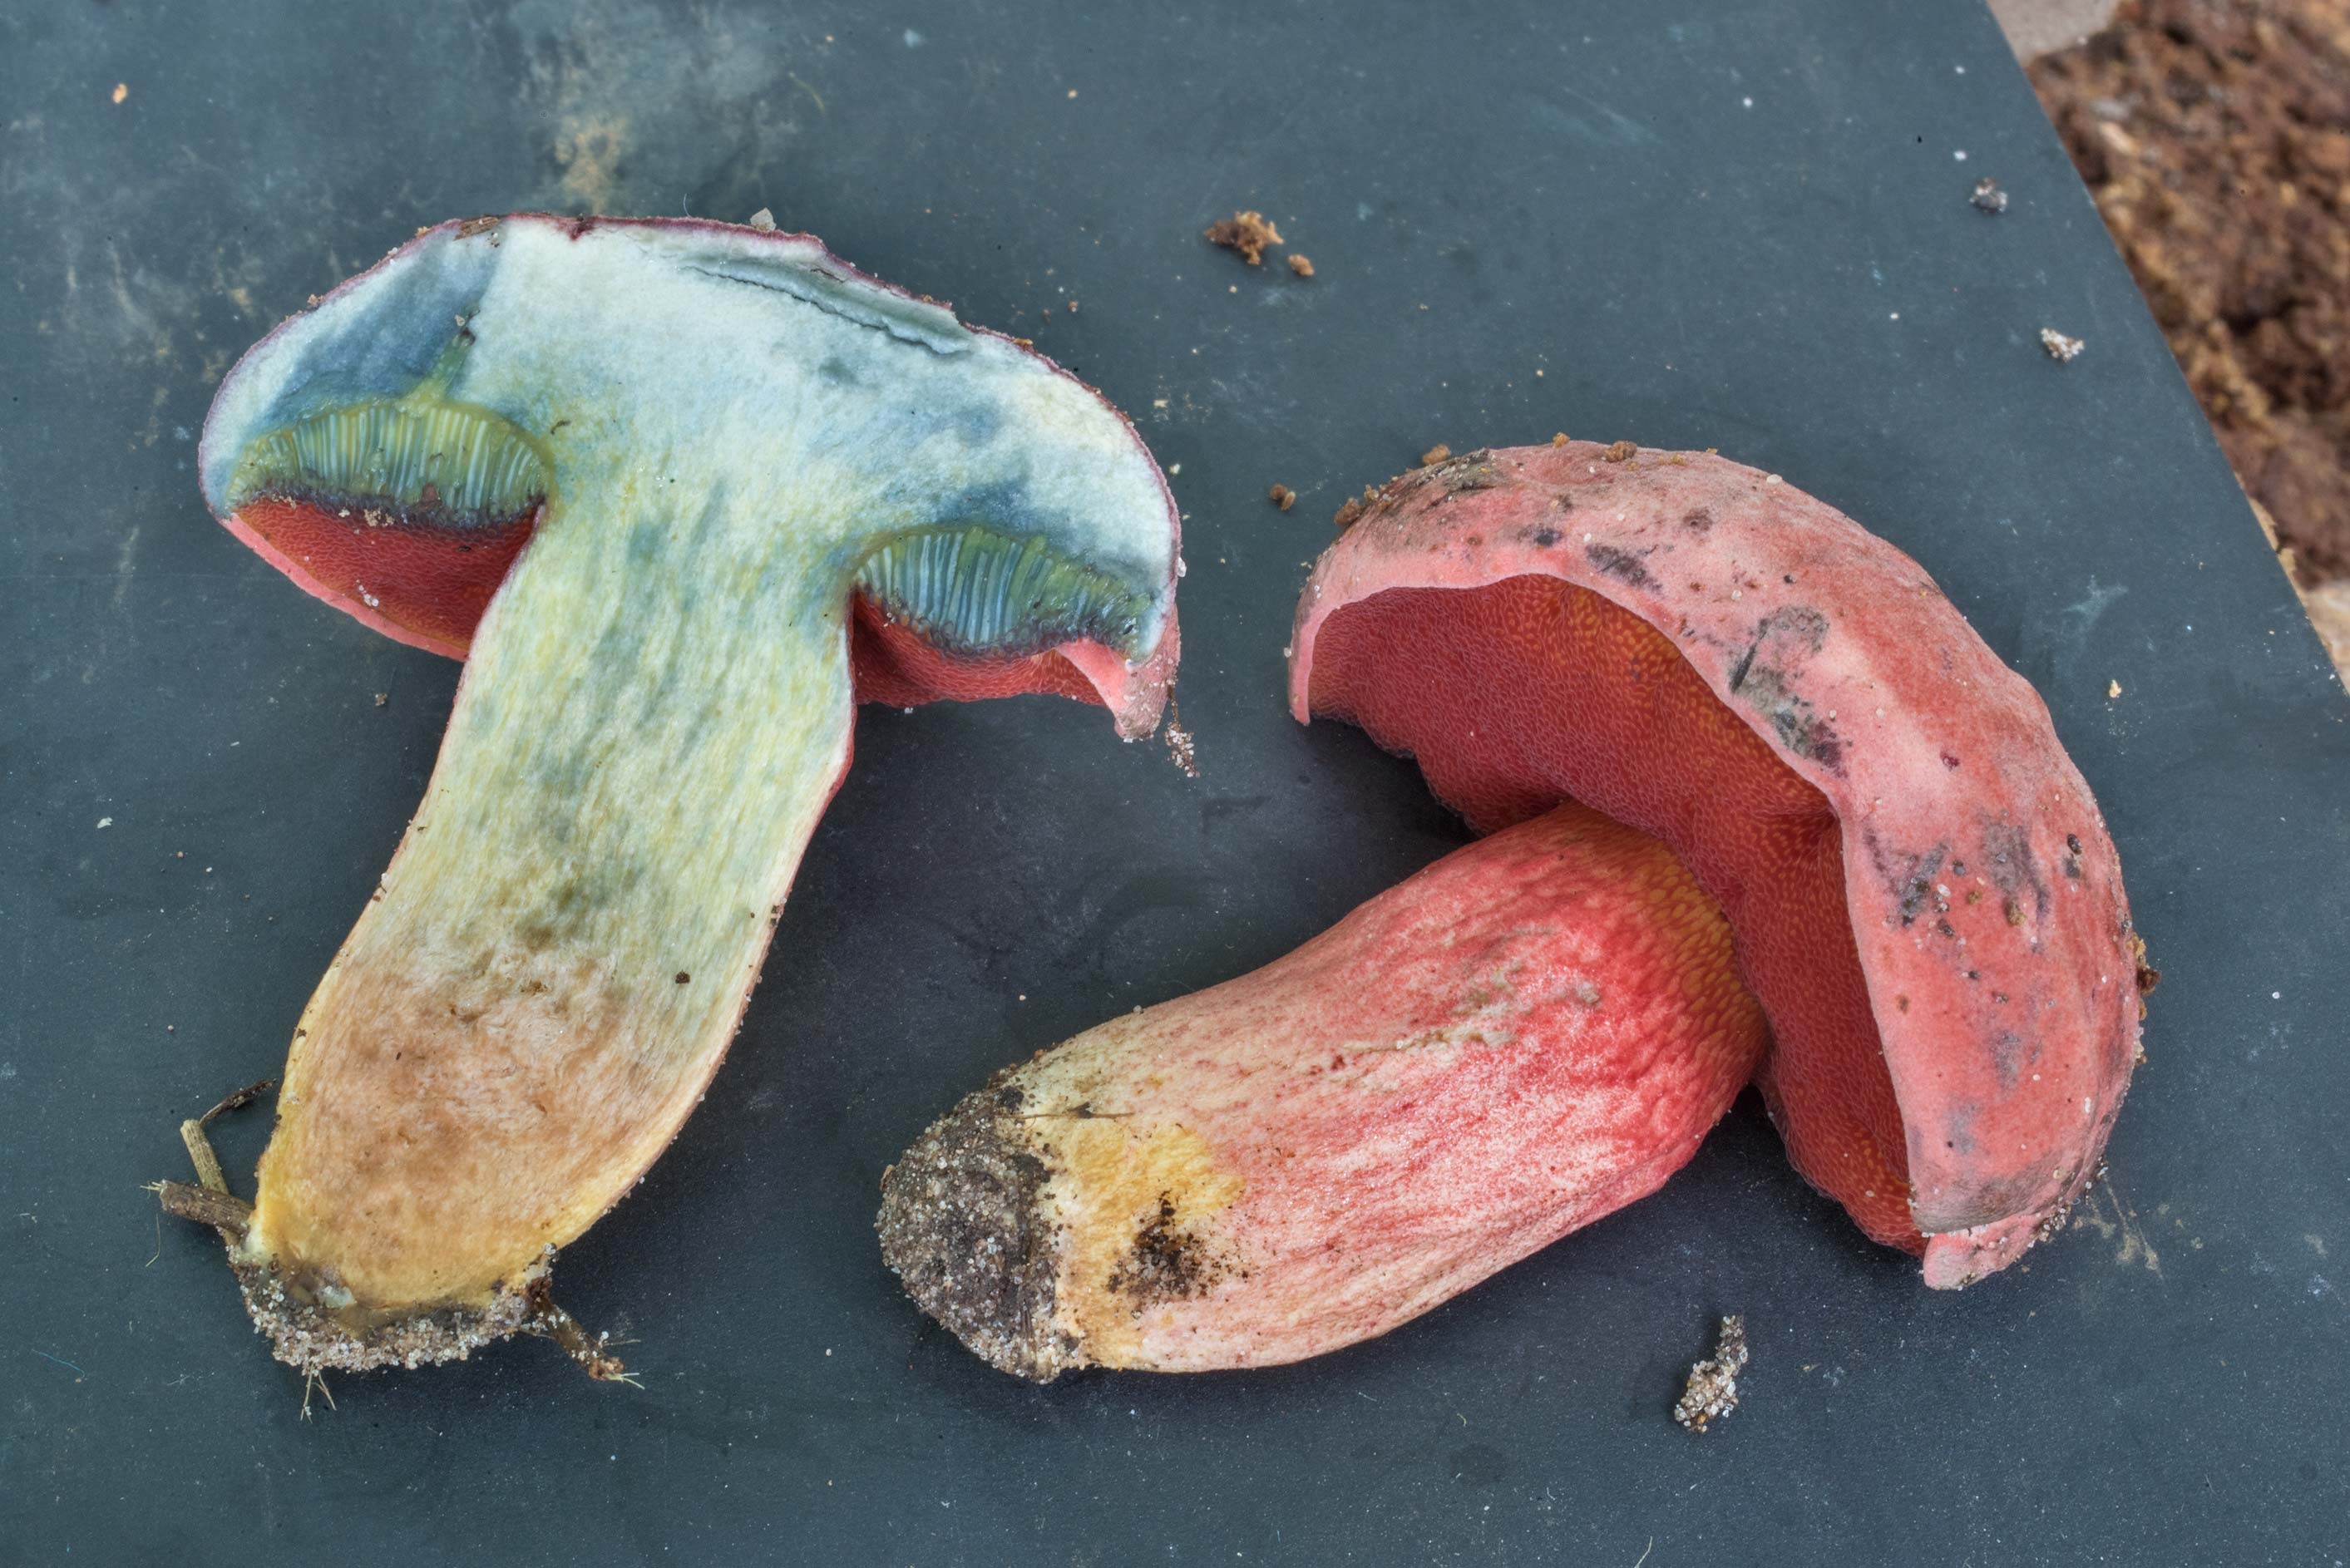 Dissected red pored bolete mushroom Boletus...National Forest. Richards, Texas